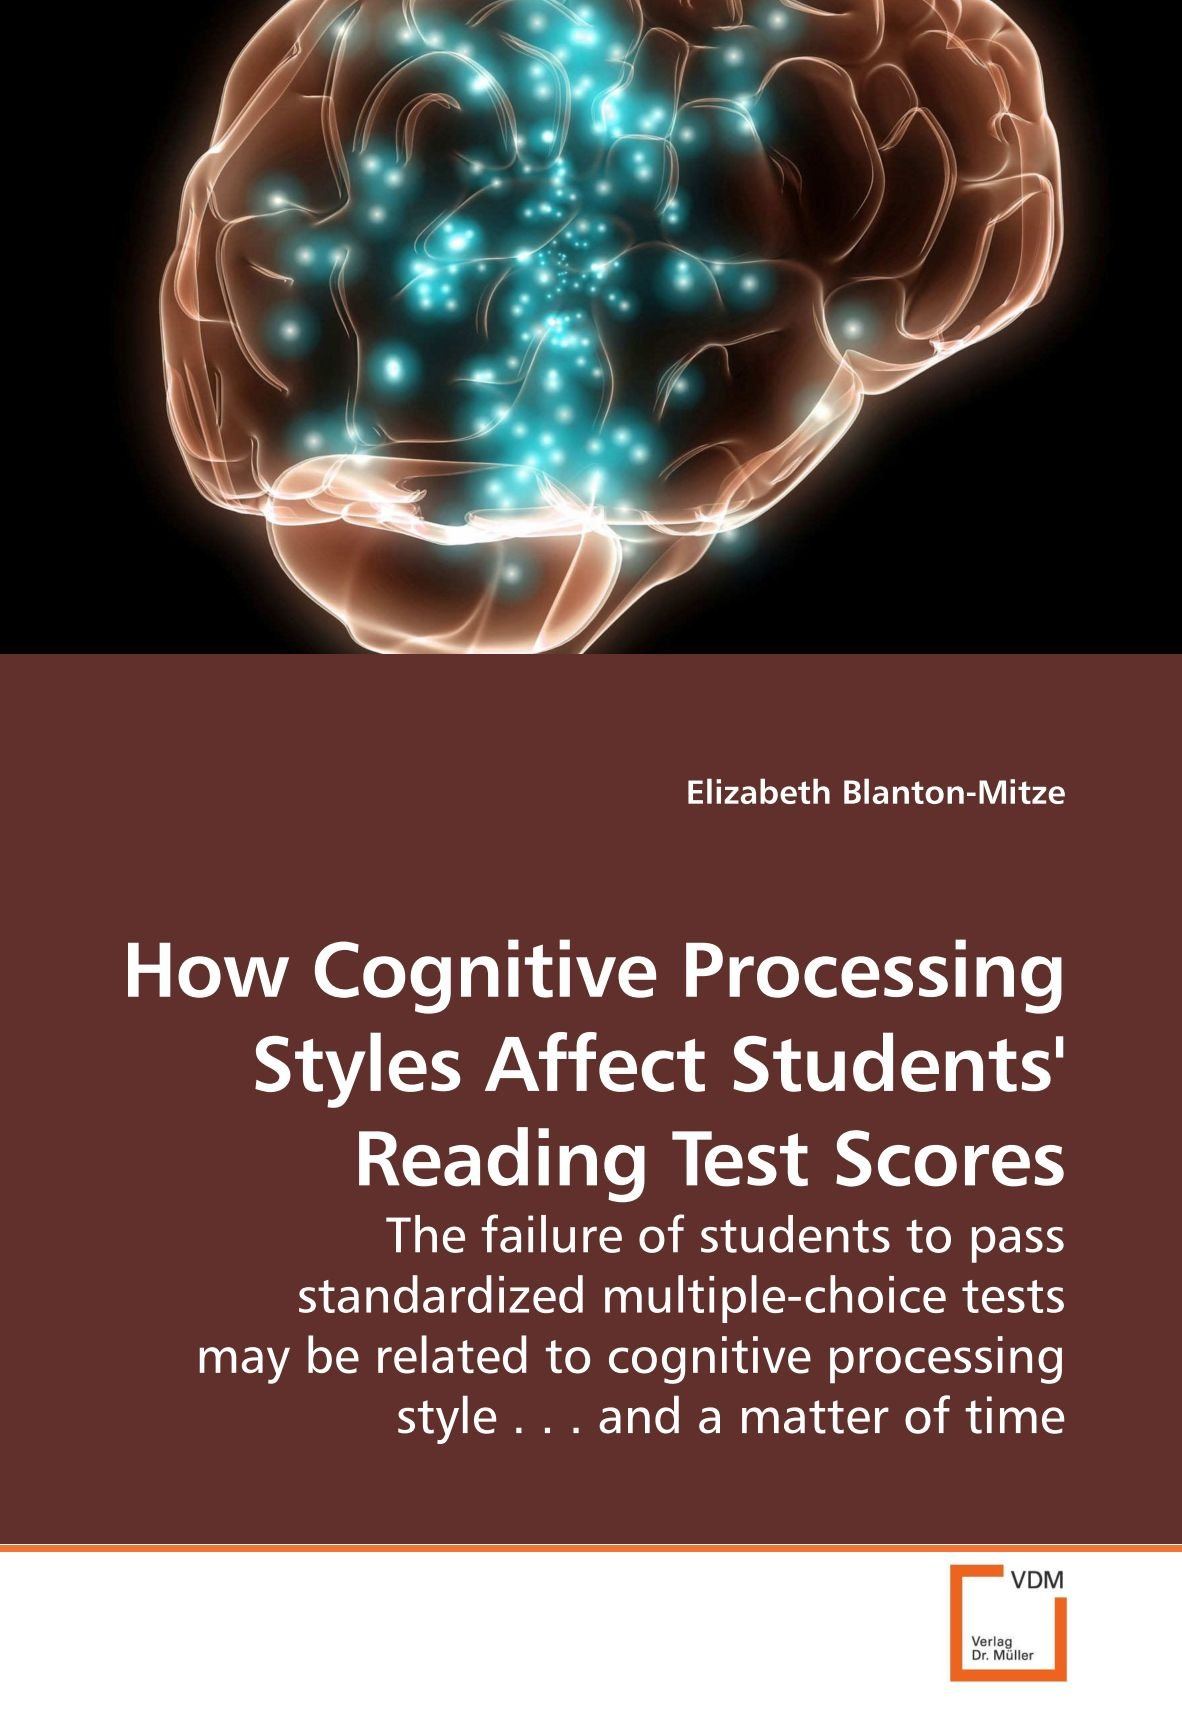 Download How Cognitive Processing Styles Affect Students' Reading Test Scores: The failure of students to pass standardized multiple-choice tests may be ... processing style . . .  and a matter of time Text fb2 book